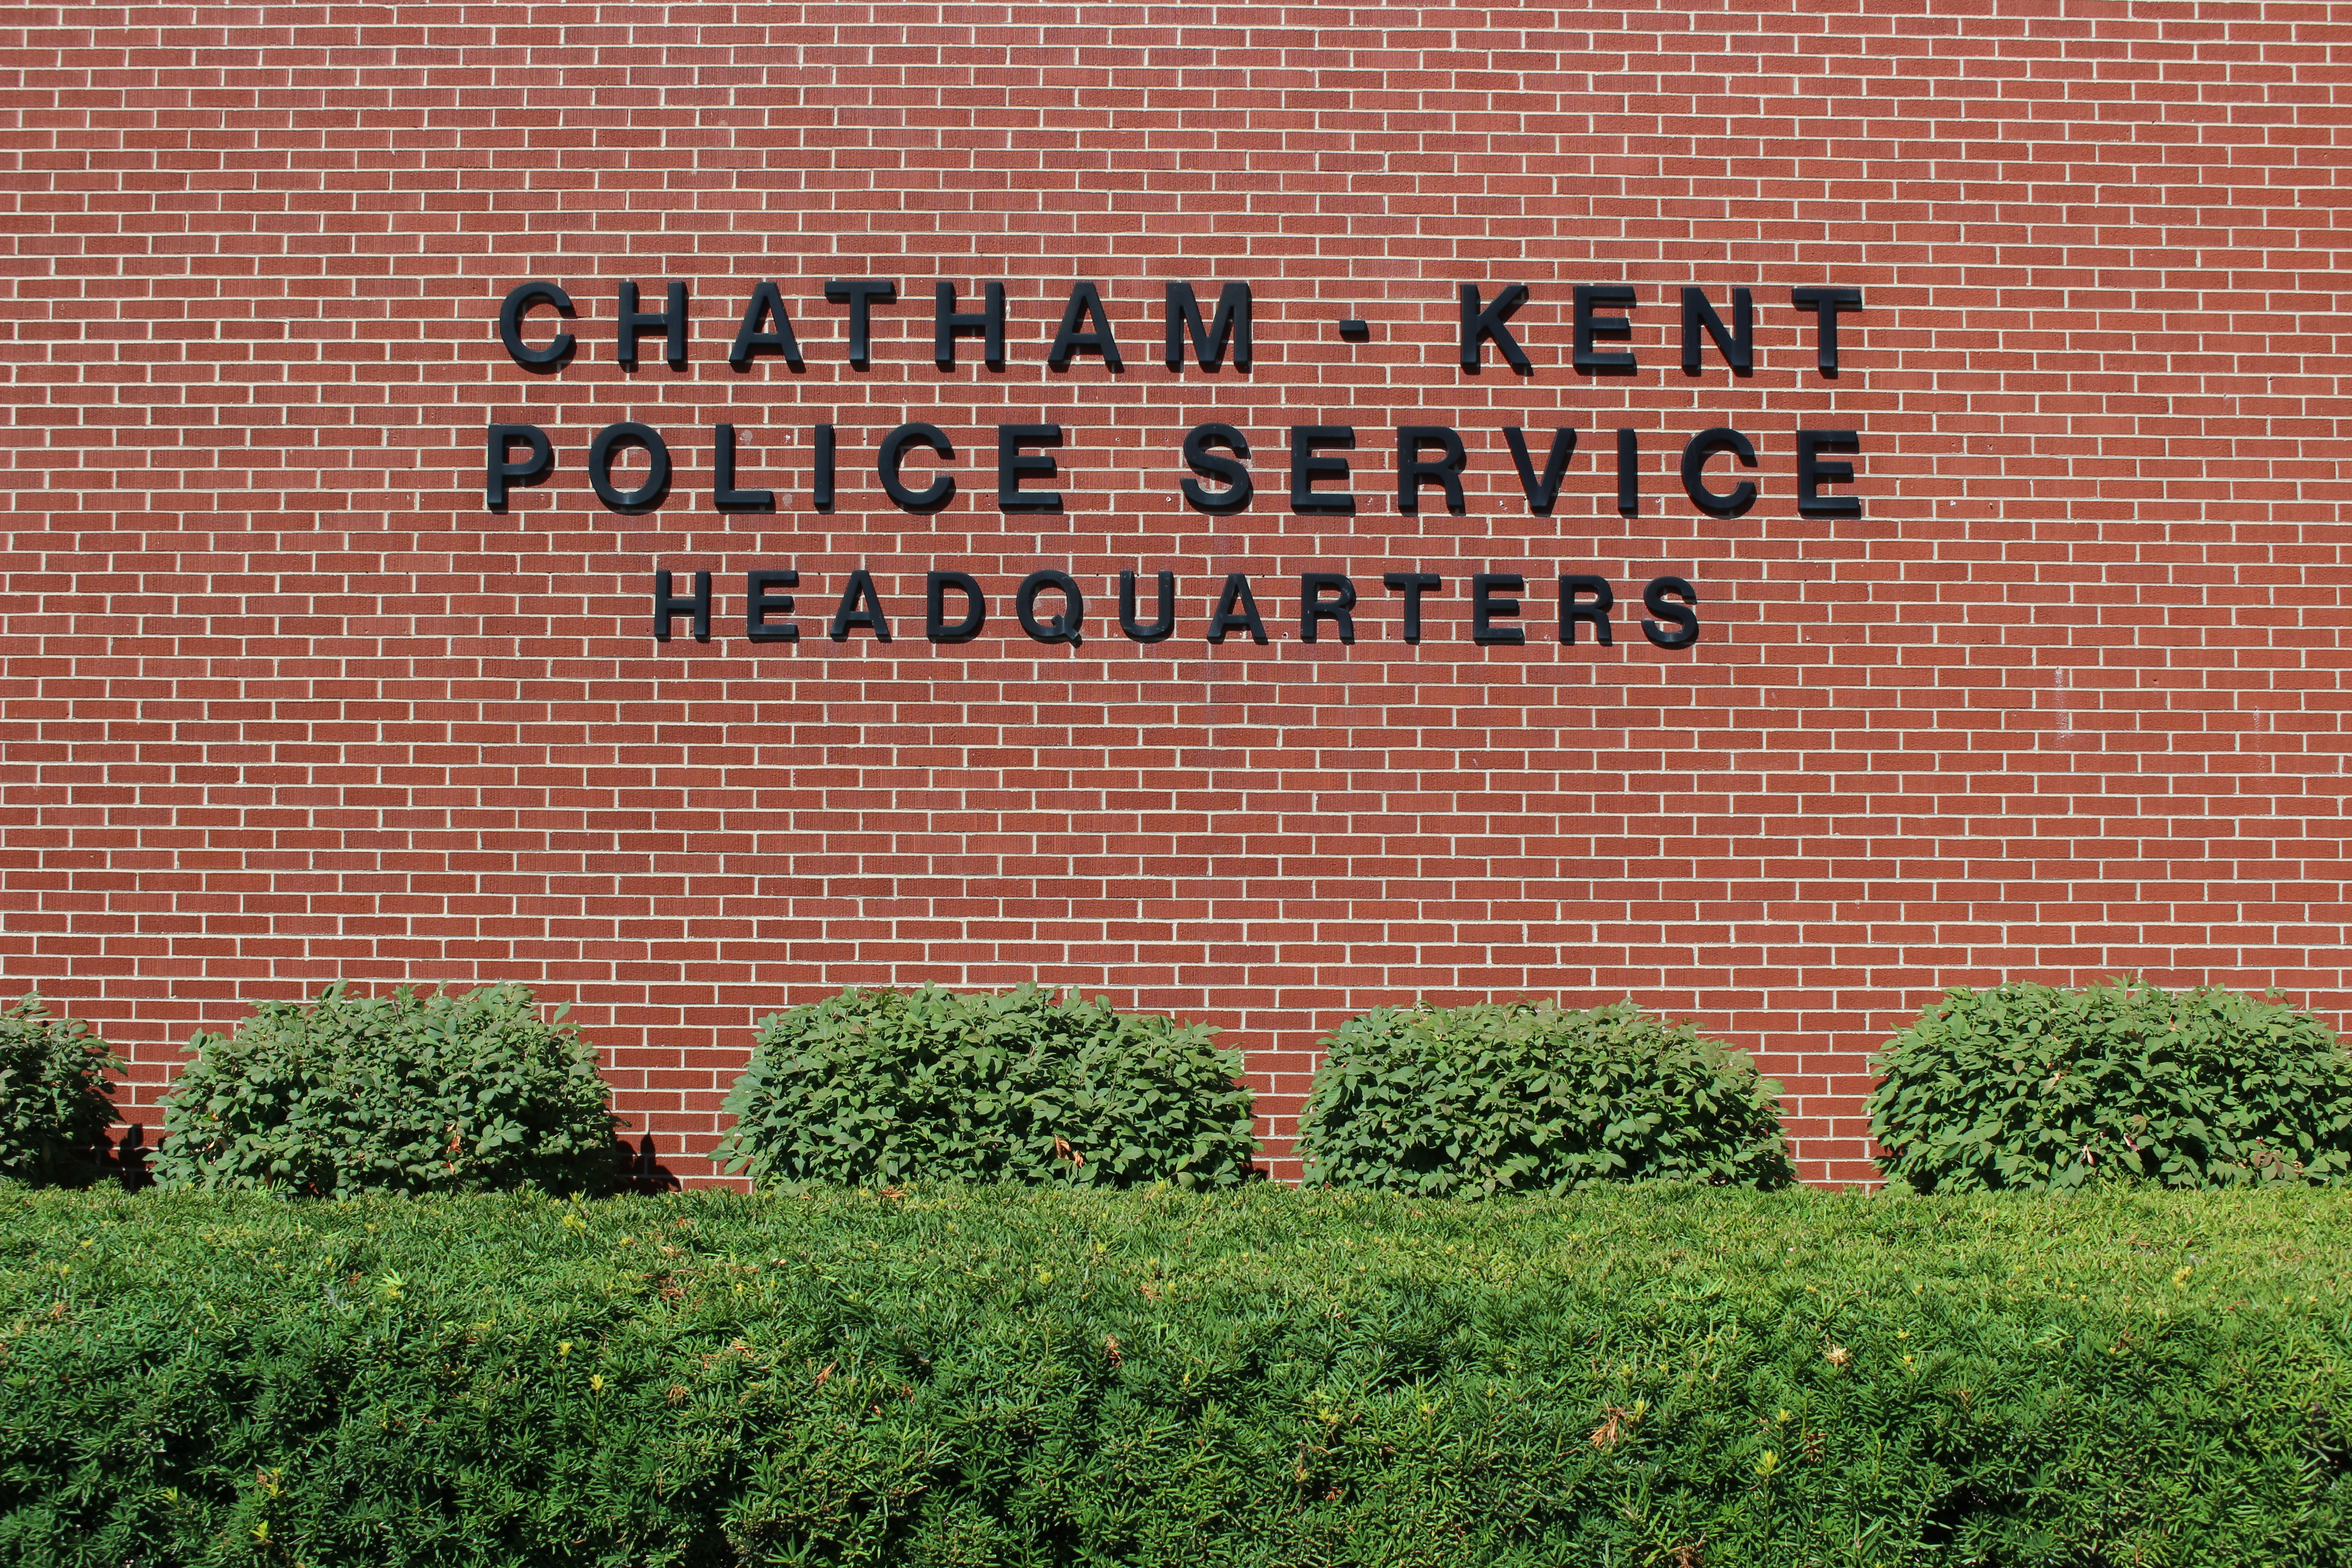 Chatham-Kent Police Service Headquarters, July 23, 2015. (Photo by Mike Vlasveld)